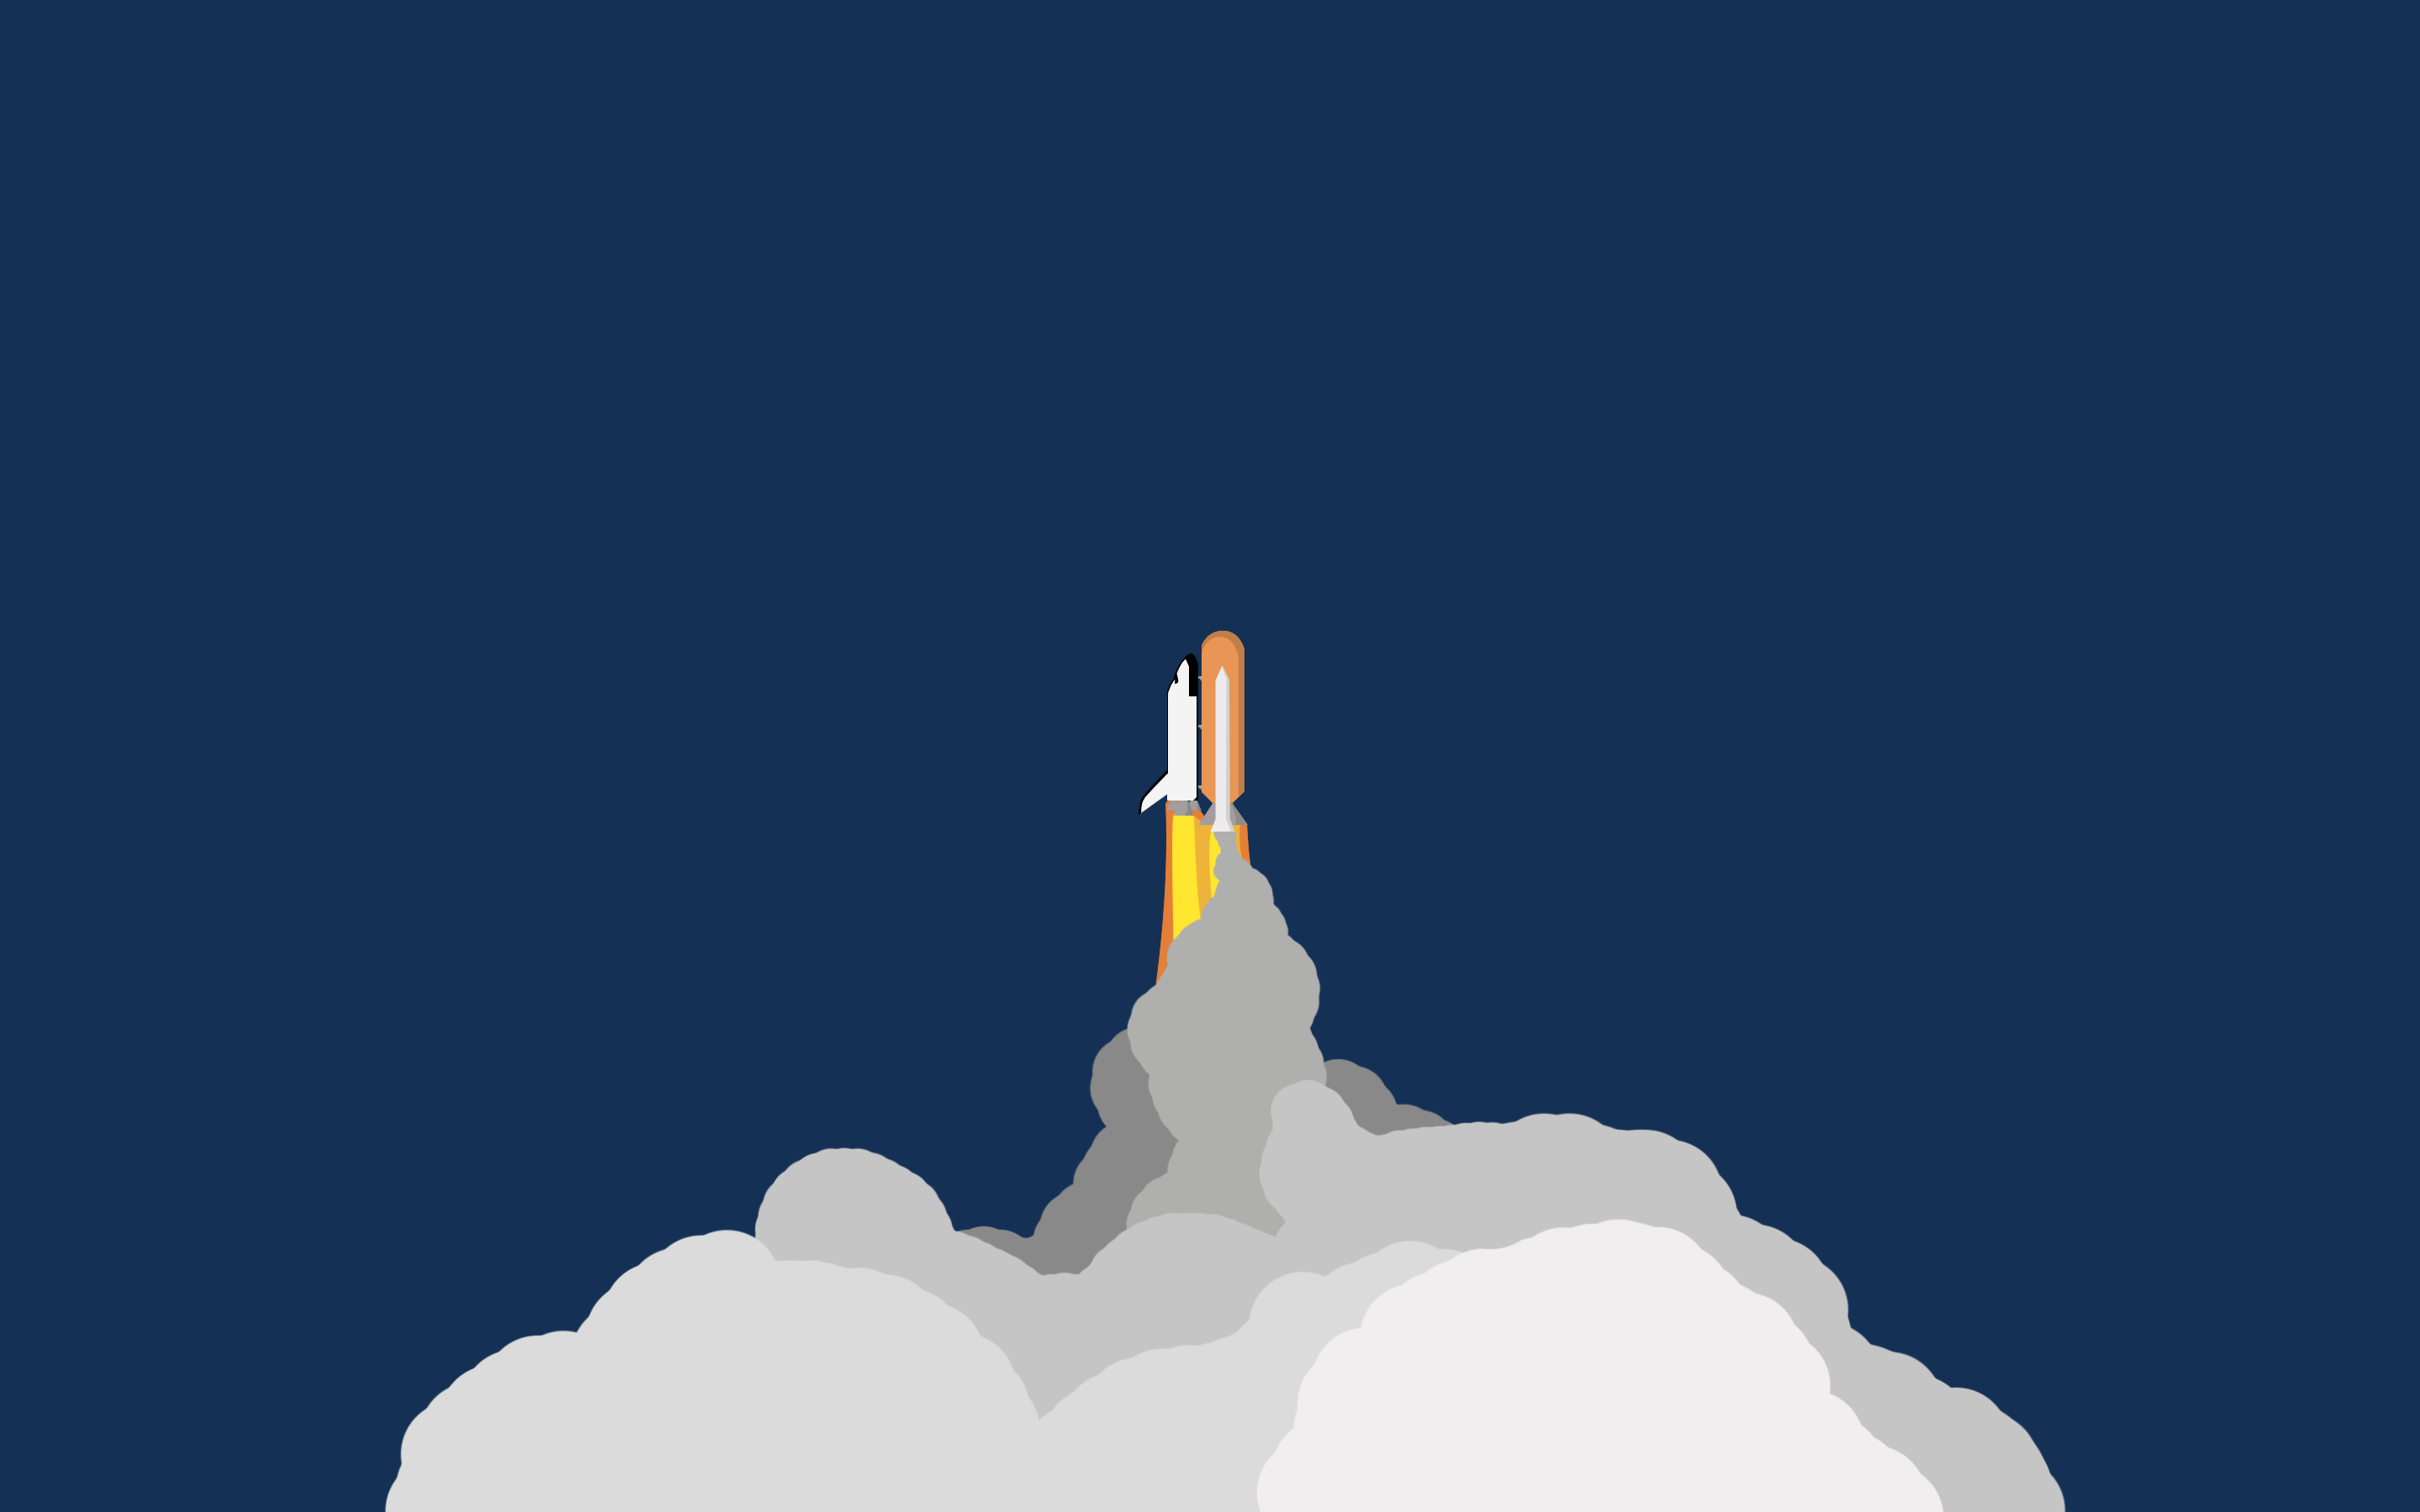 space shuttle minimalistic wallpaper 2880x1800 by apple